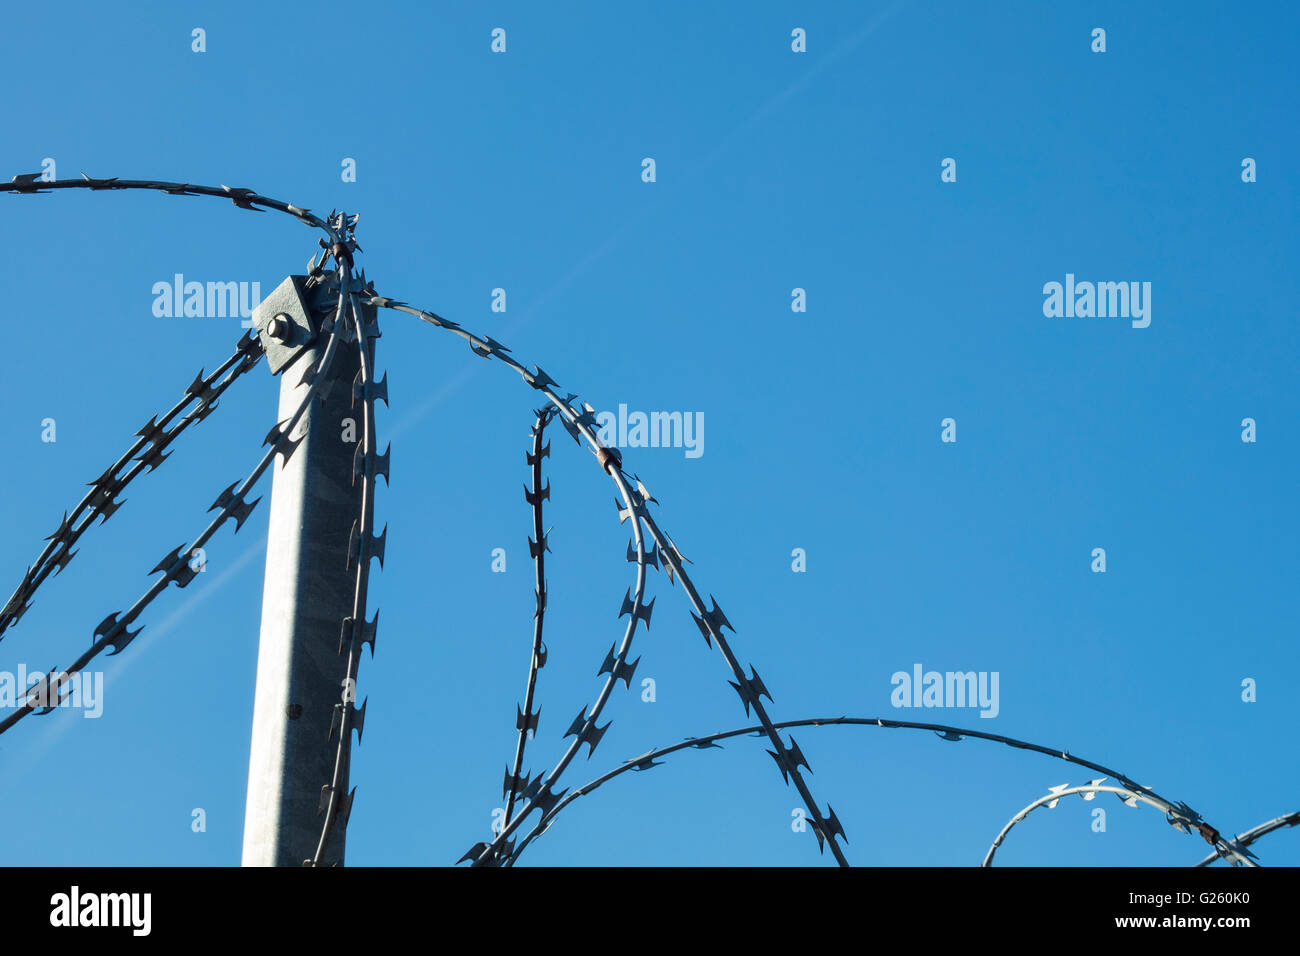 Detail of a barbed wire on a wall with blue sky at background - Stock Image